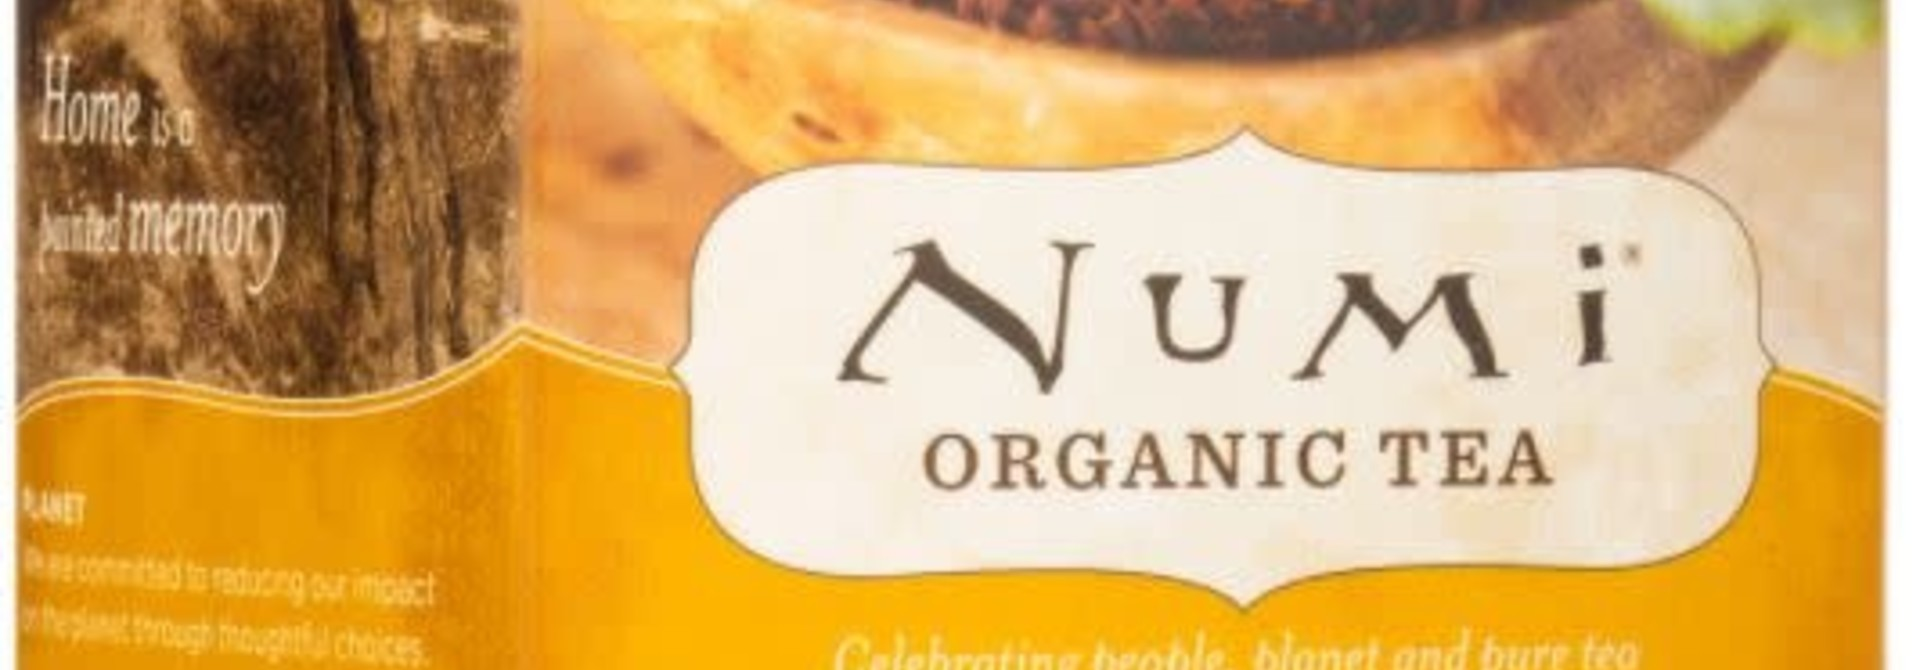 Numi Organic Honeybush Teas